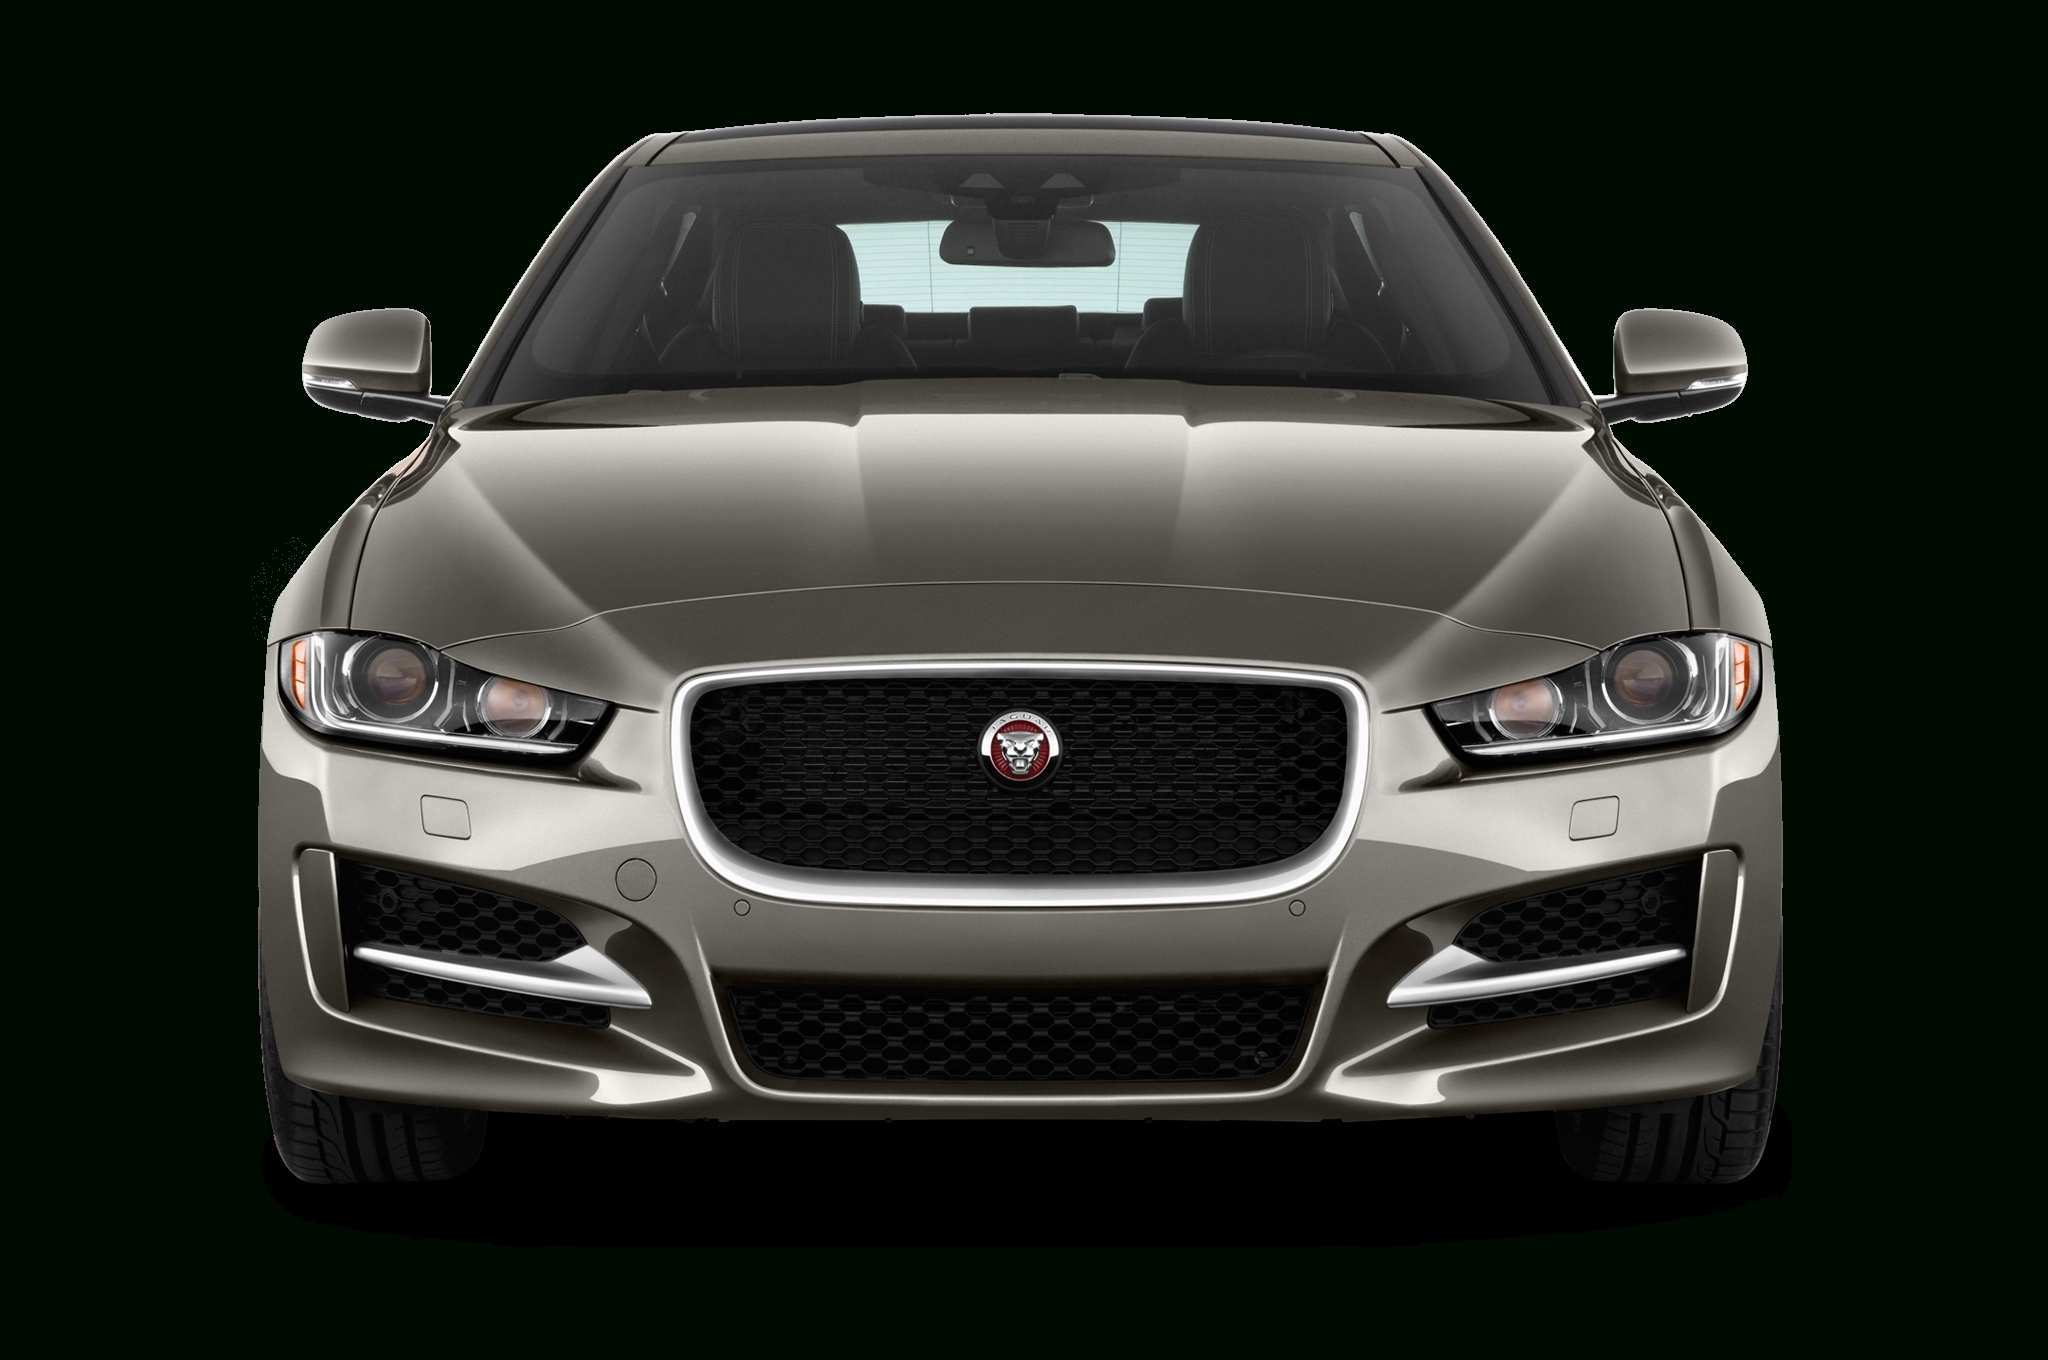 43 Great New Xe Jaguar 2019 First Drive Price Performance And Review Ratings by New Xe Jaguar 2019 First Drive Price Performance And Review